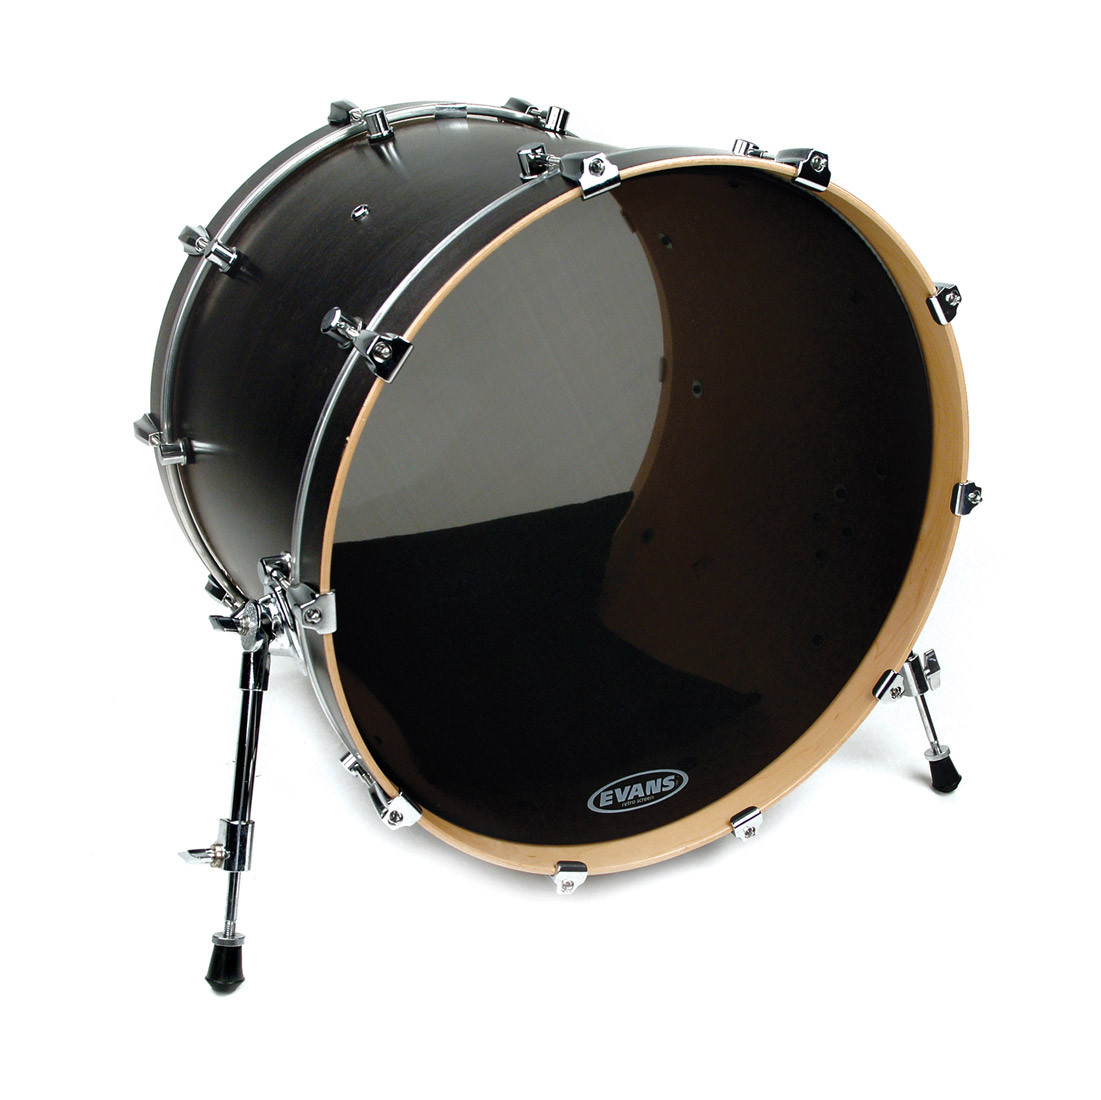 evans 22 retro screen mesh bass drum resonant head drums on sale. Black Bedroom Furniture Sets. Home Design Ideas